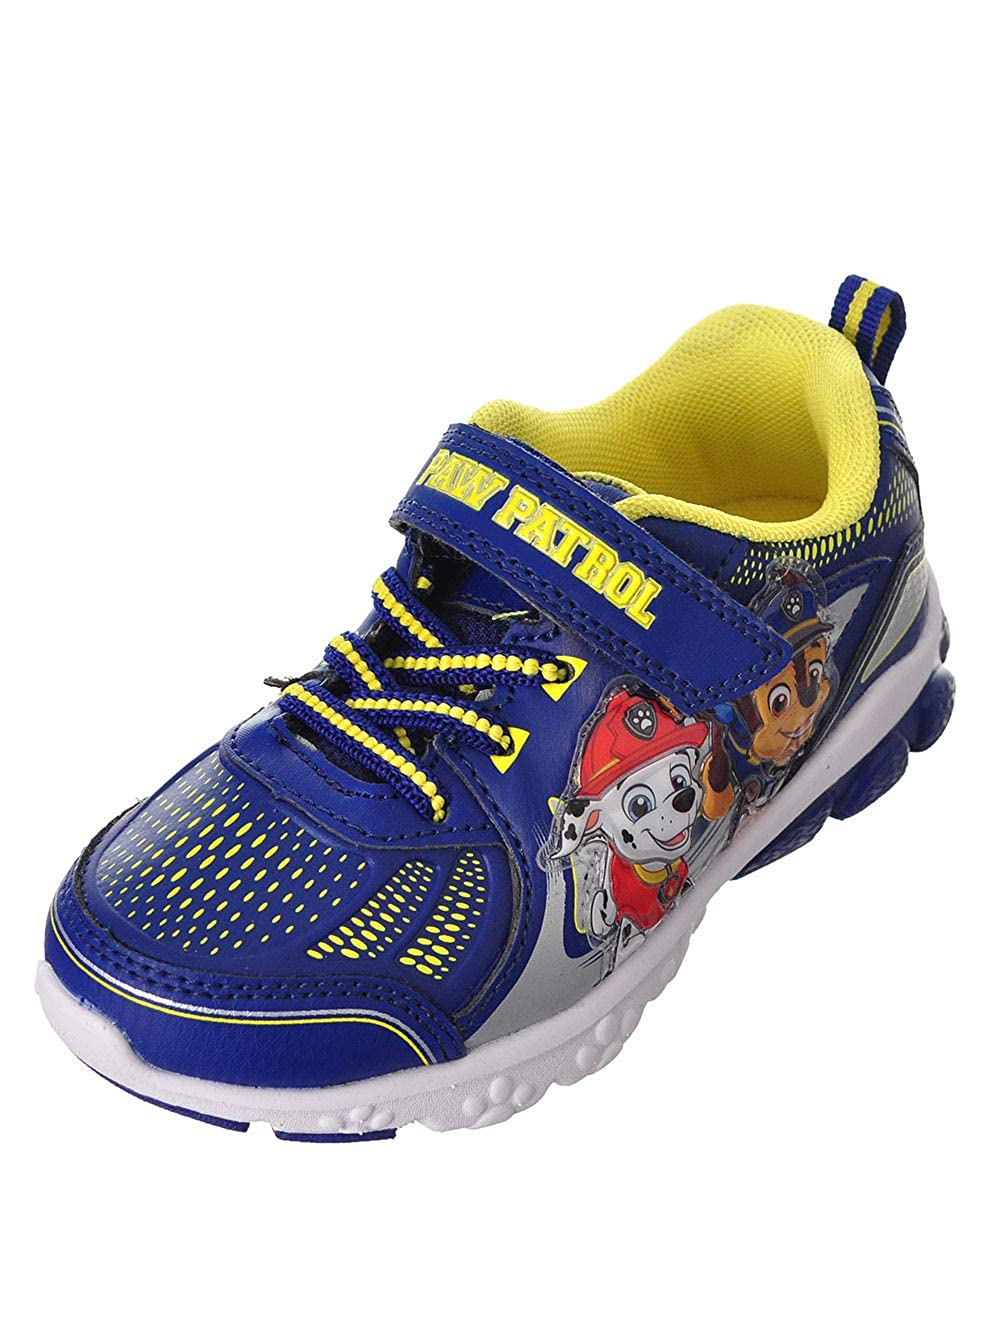 Josmo Boys Light up Paw Patrol Athletic Shoes (Toddler/Little Kid) Navy/Blue Josmo Kids